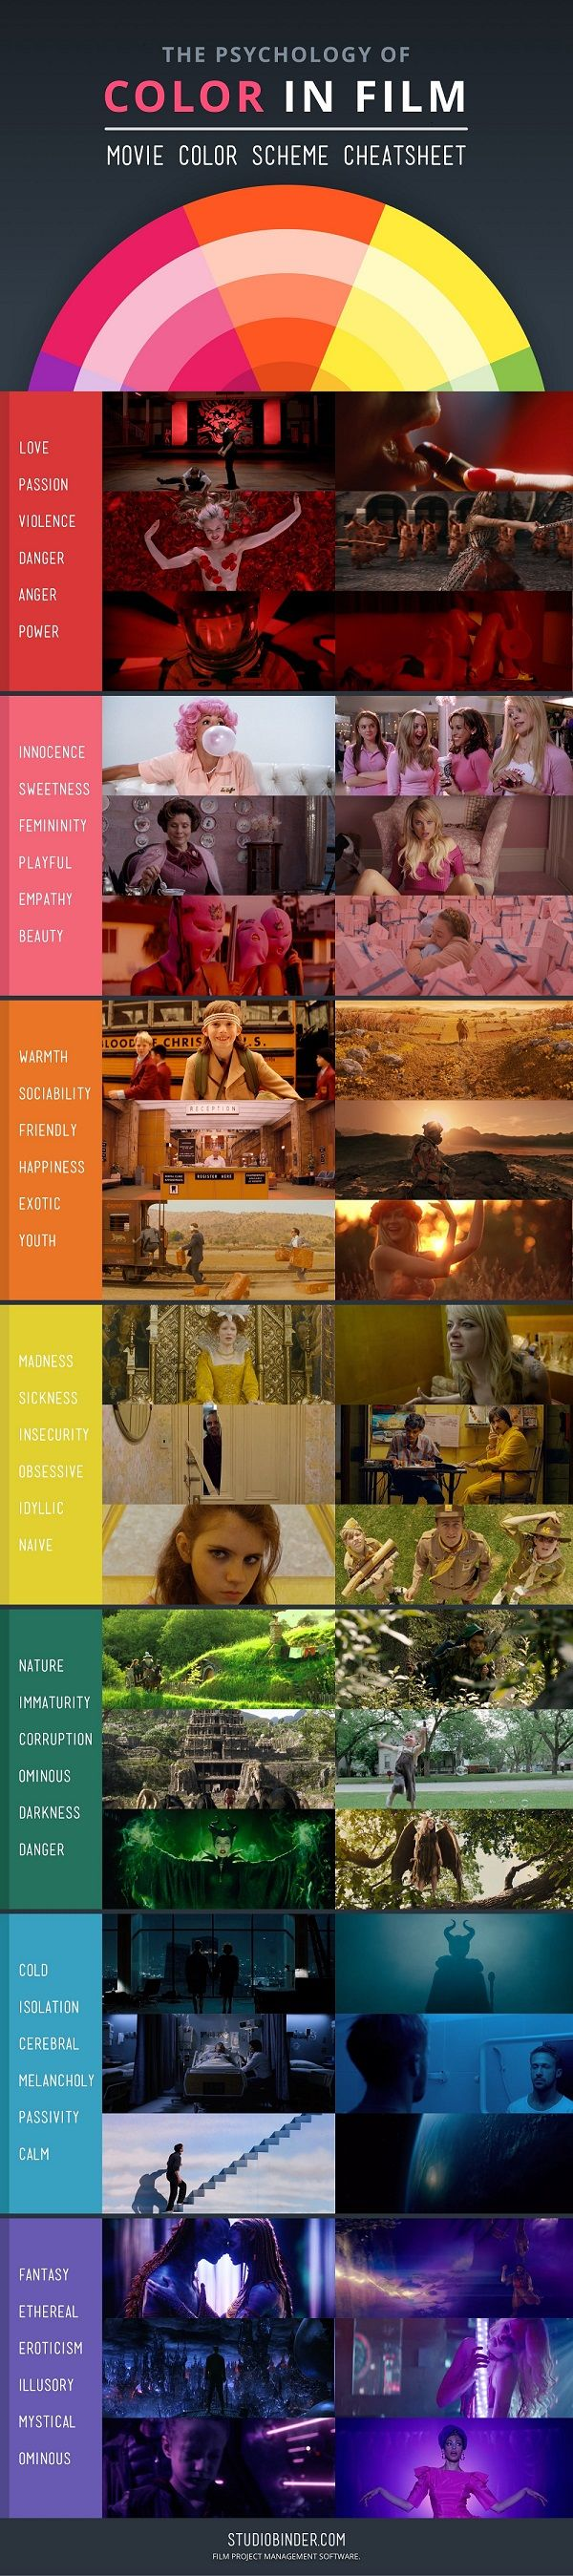 Infographic: The Psychology Of Color In Film, A Color Scheme Cheat Sheet - DesignTAXI.com